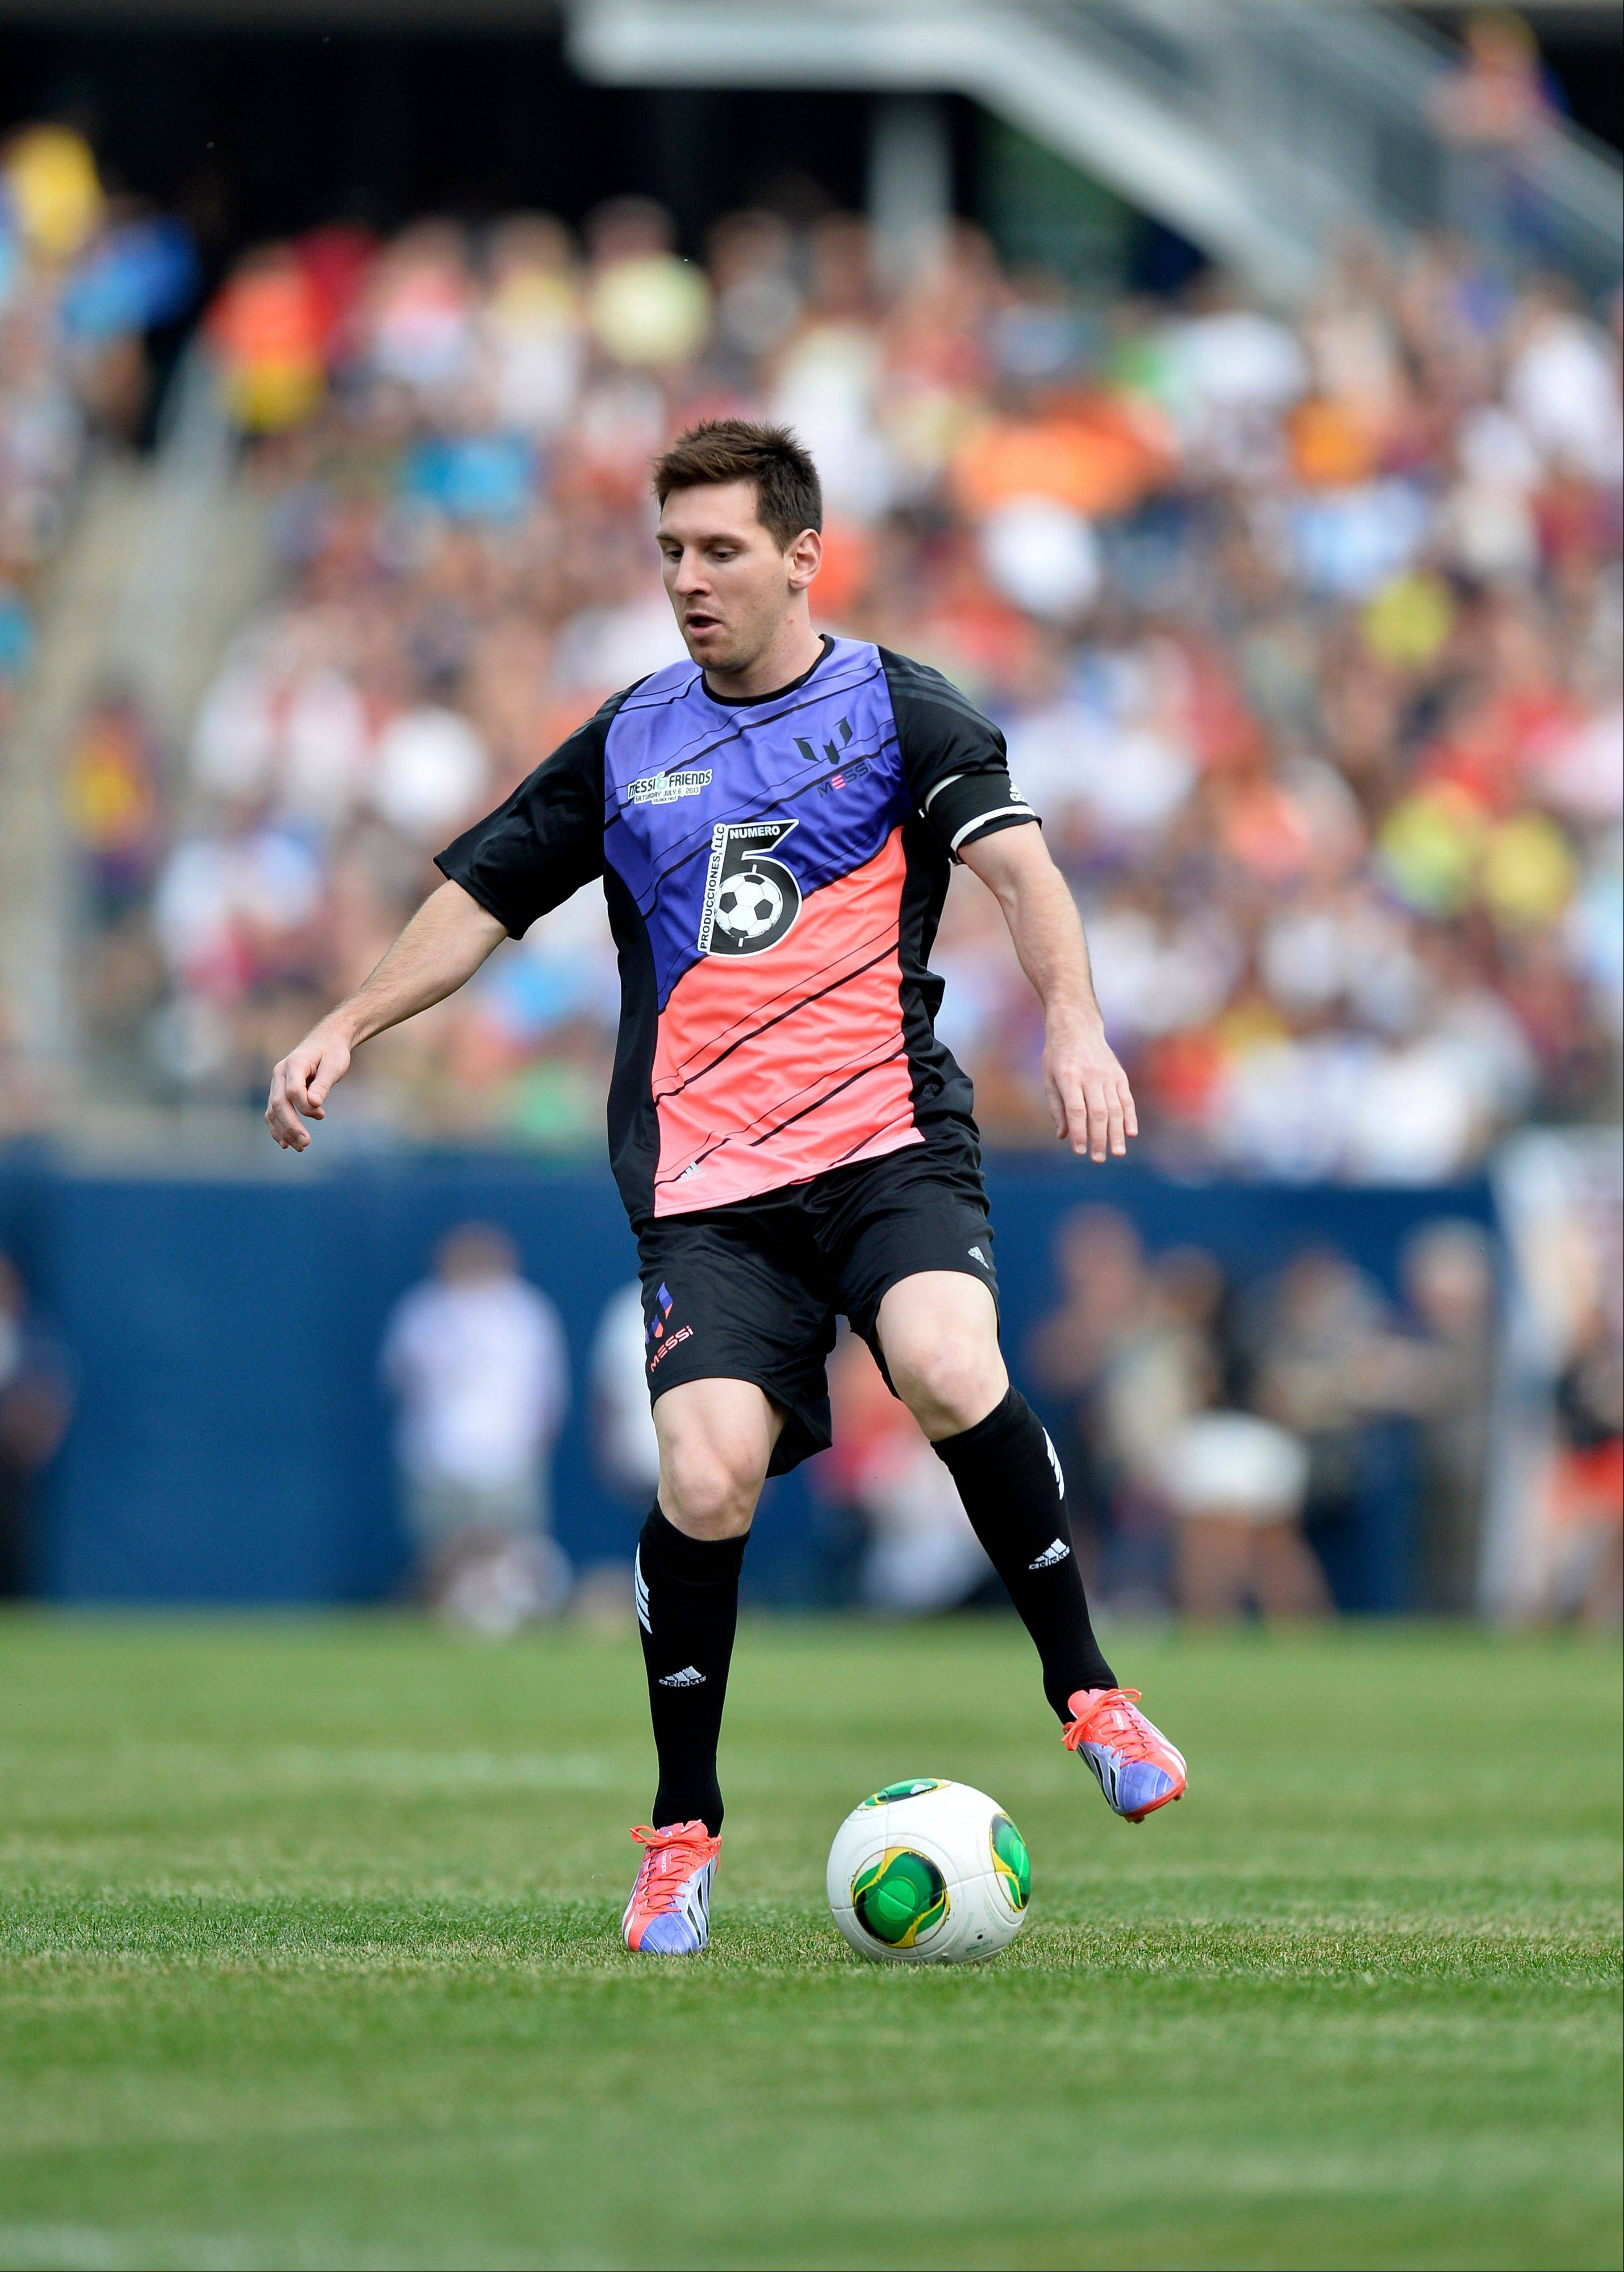 Messi�s Friends� Lionel Messi handles the ball against the Rest of the World during the first half of the Messi and Friends charity soccer exhibition, Saturday, July 6, 2013 in Chicago.